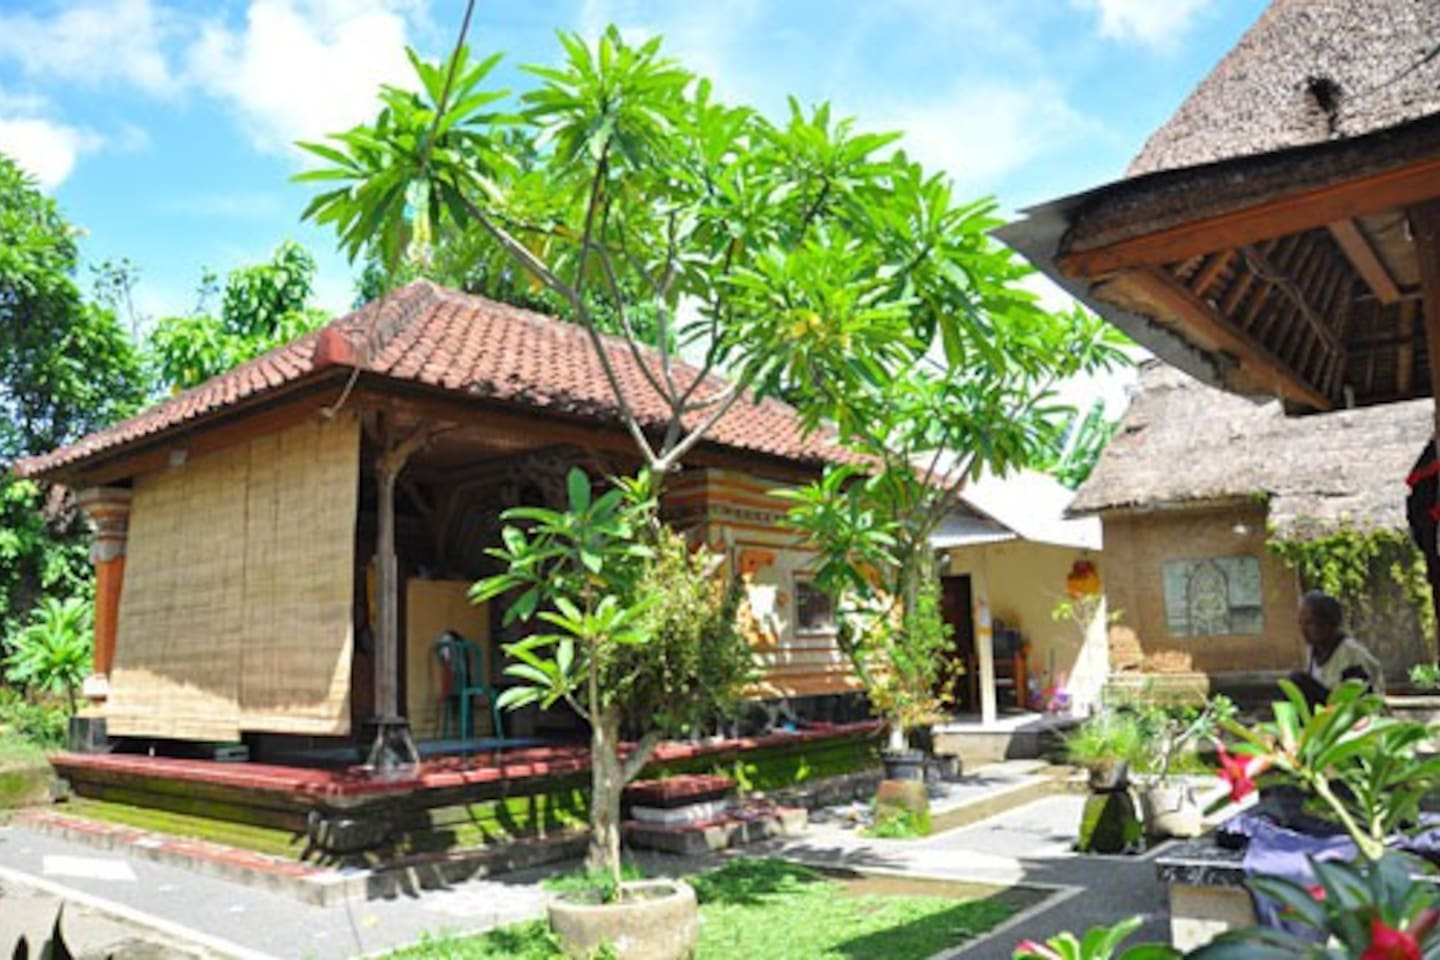 Our house is traditional with gardens and house temple.